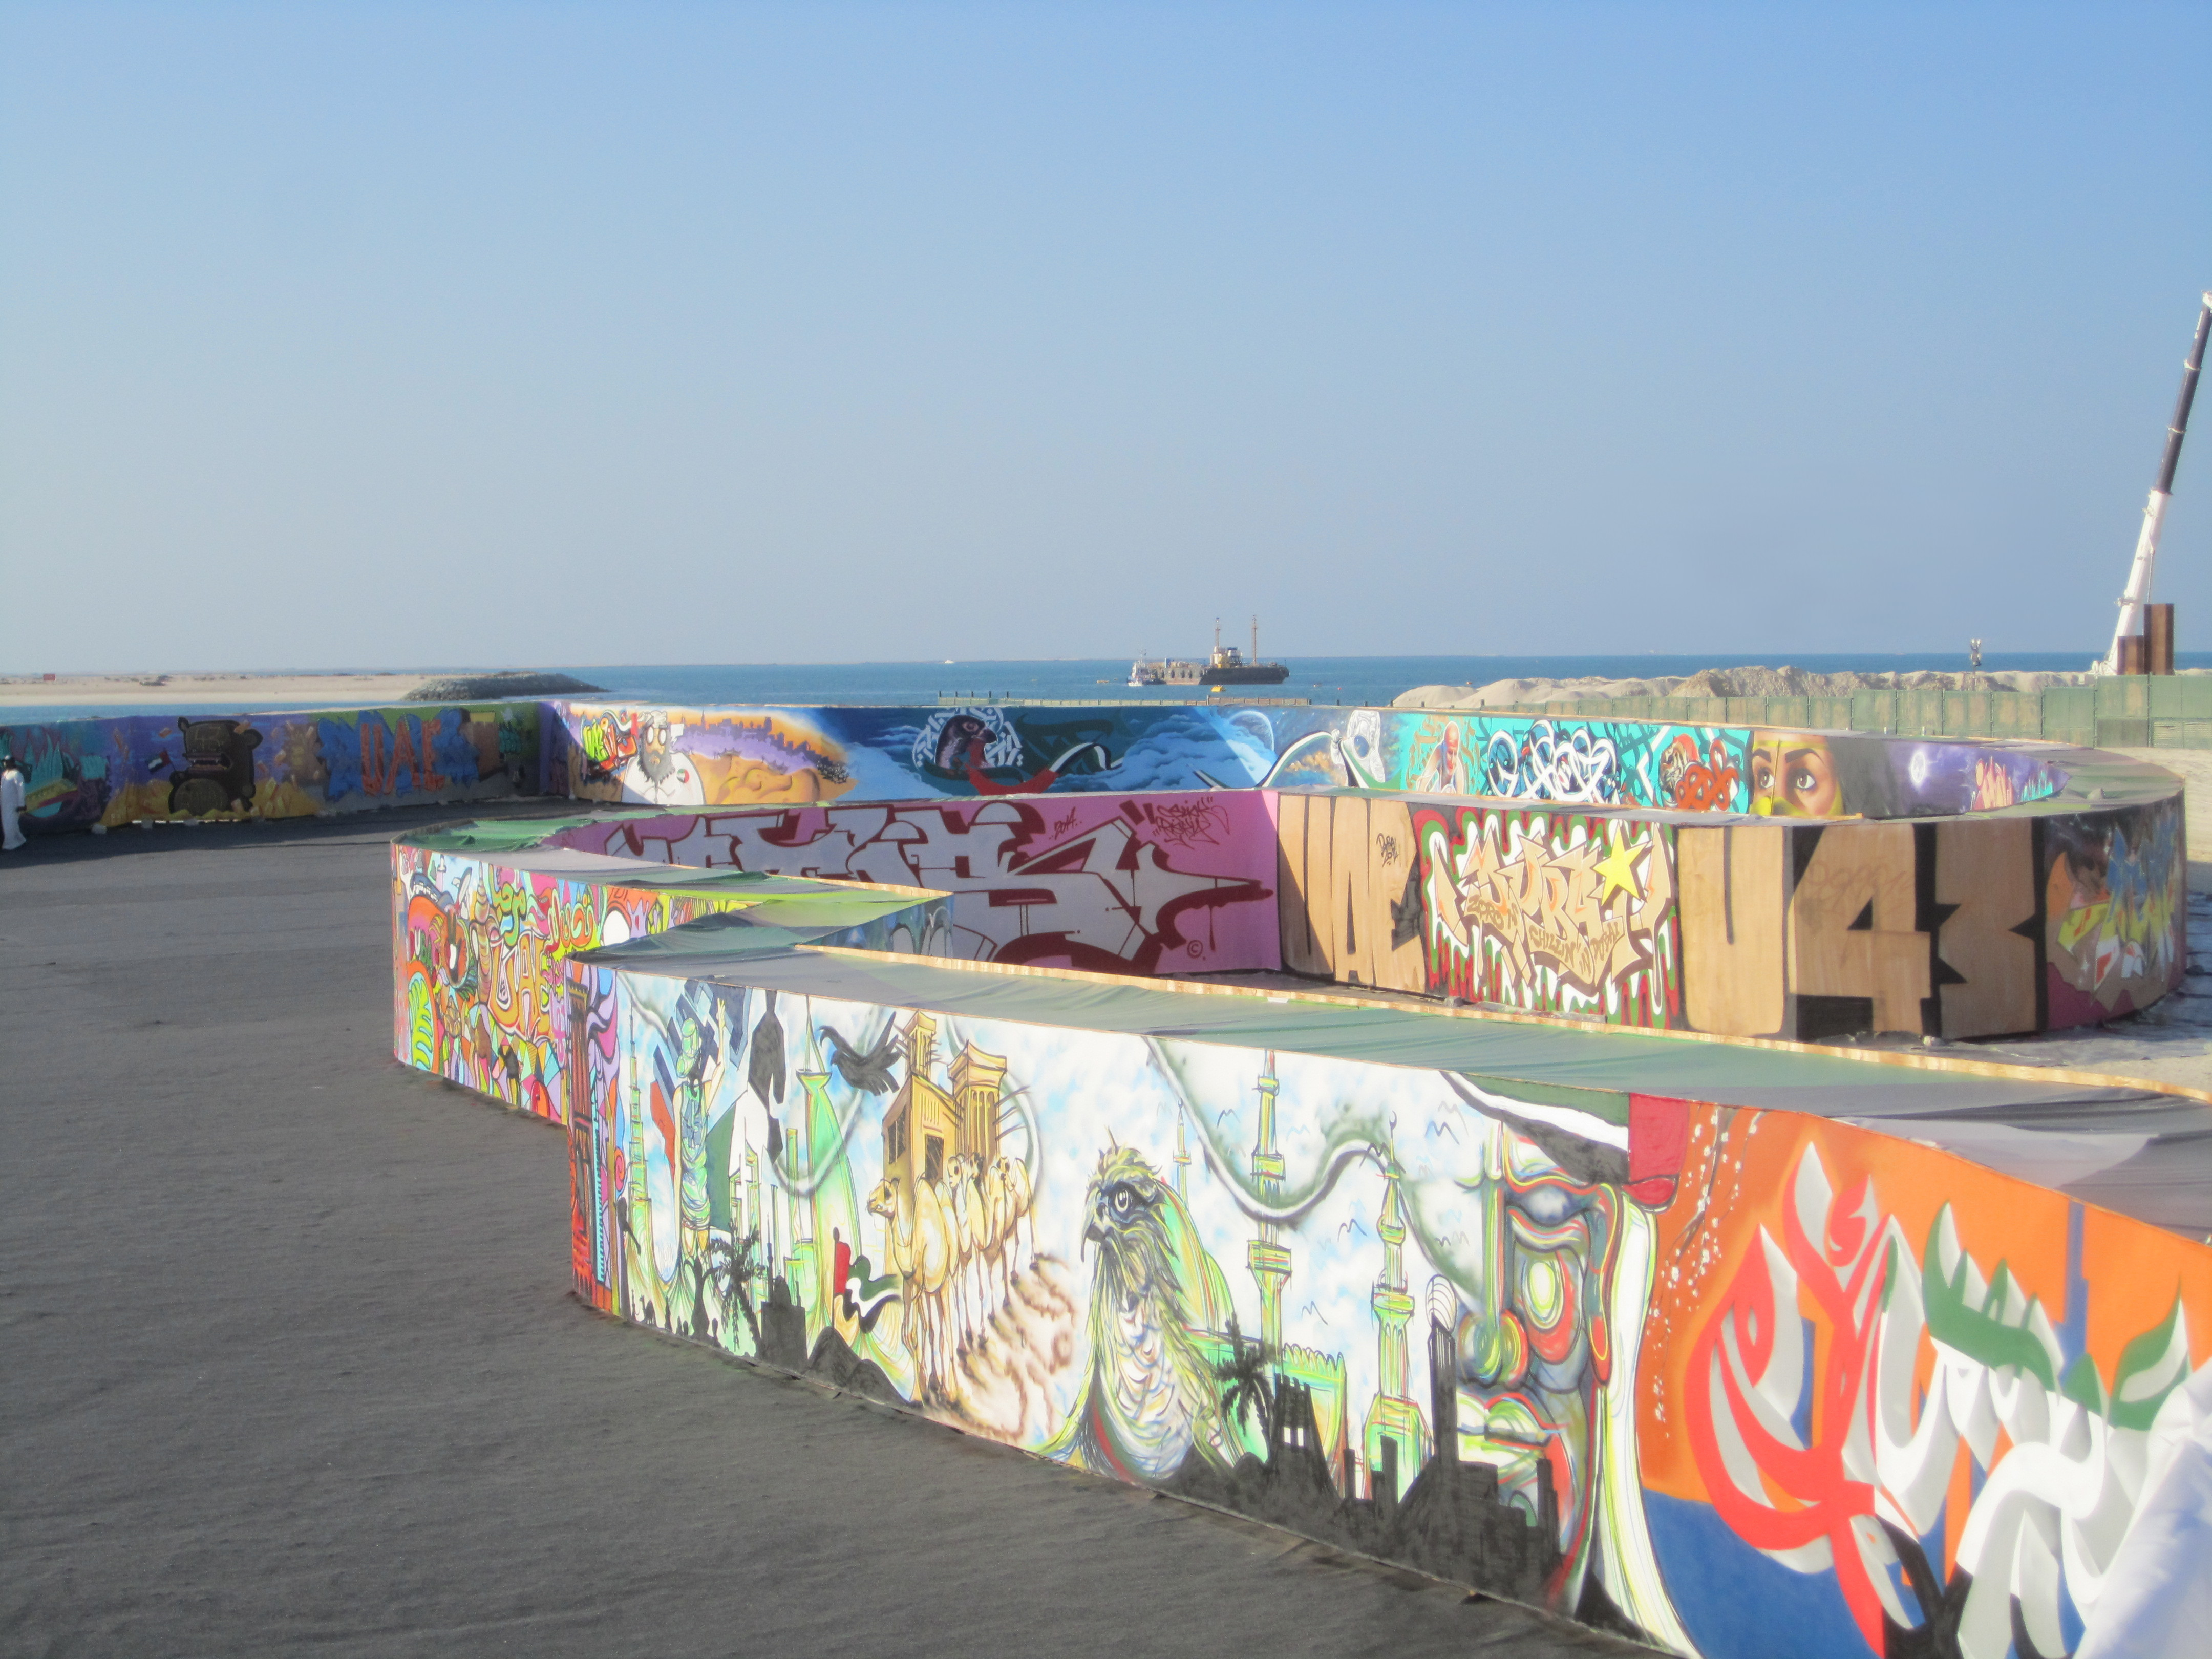 Graffiti wall uae -  Dubai S Monarch Installed An Open Air 2 2 Km Long Continuous Graffiti Wall Created By More Than 100 Artists Shaped In The Form Of A Map Of The Uae